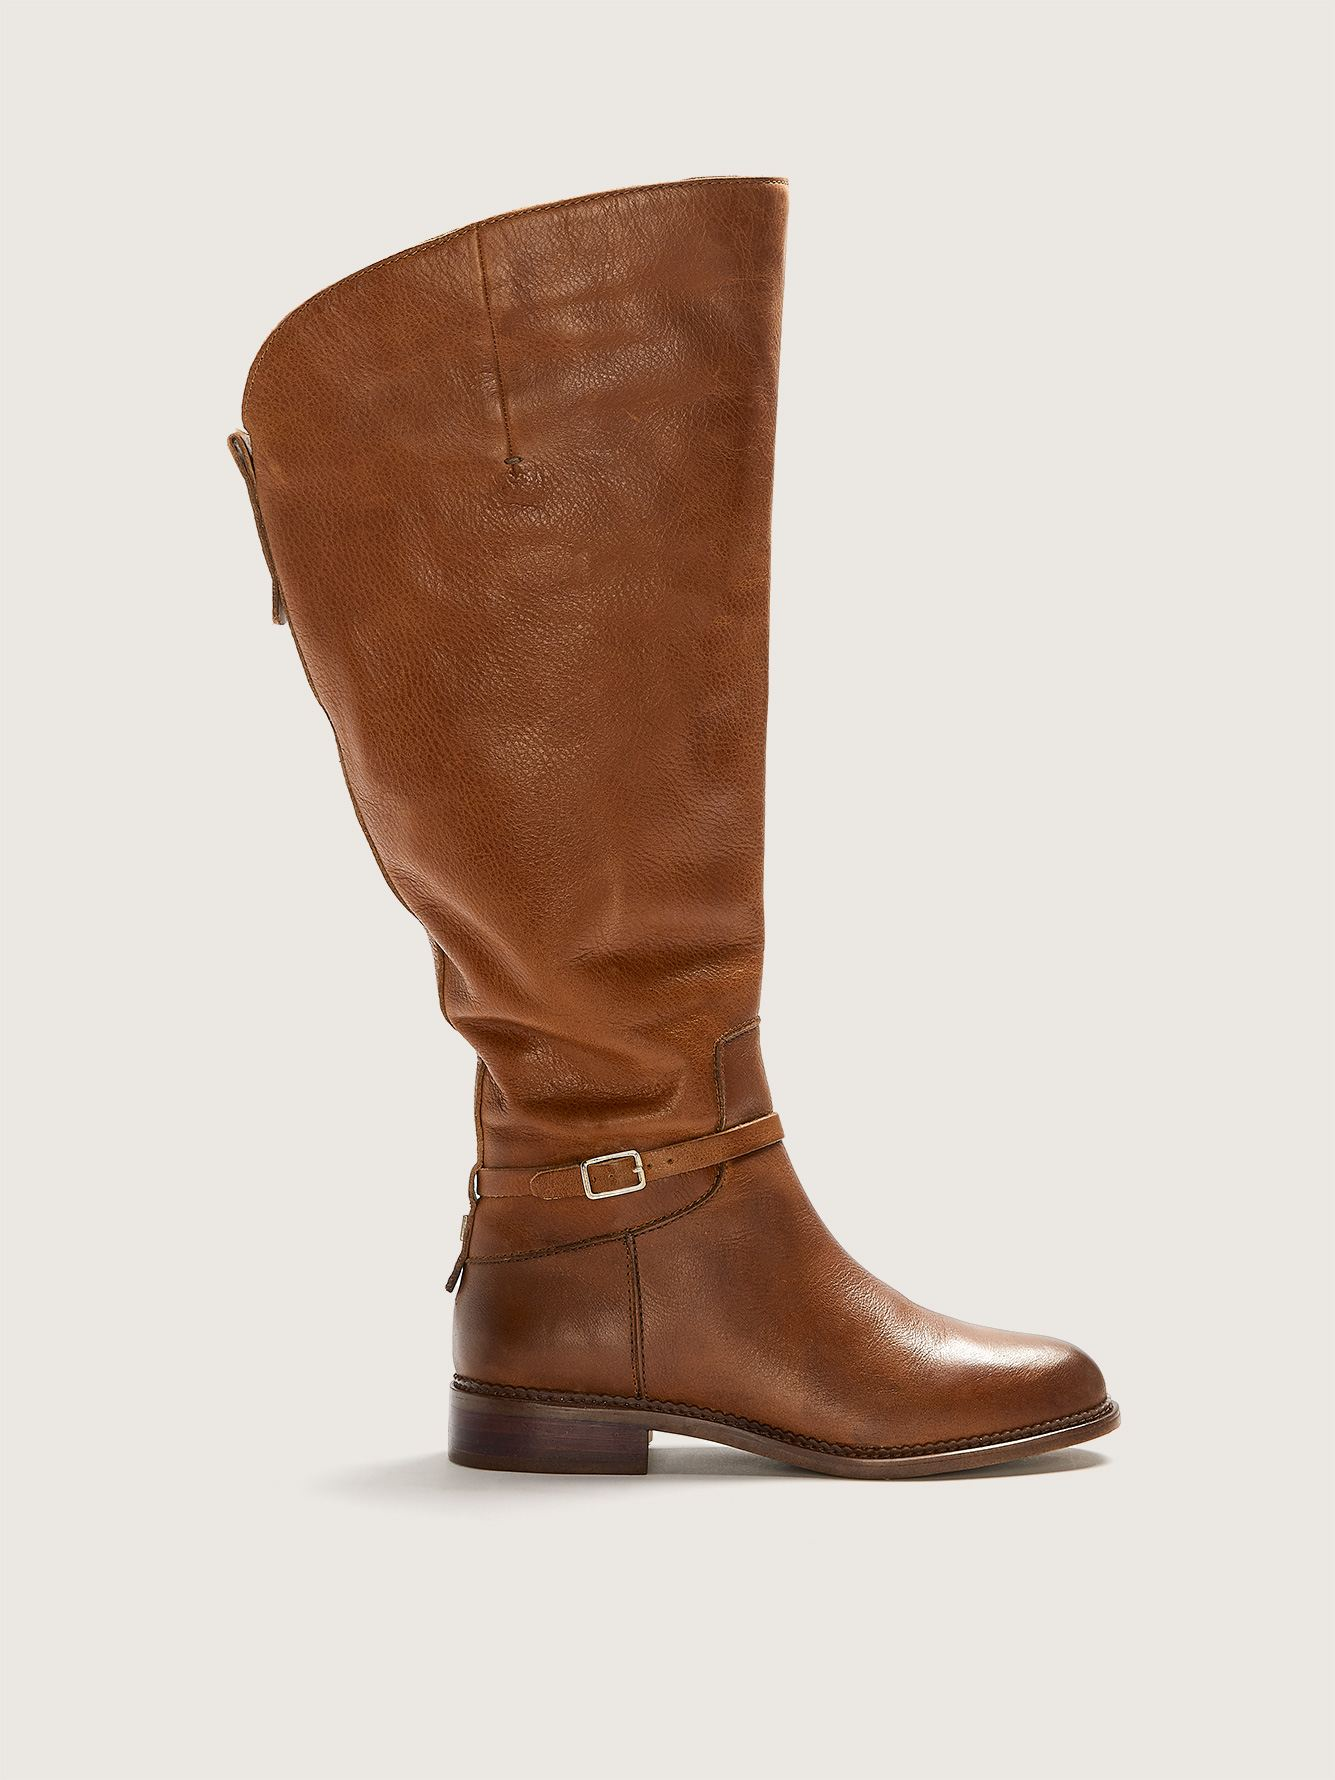 Haylie Leather Riding Boot - Franco Sarto